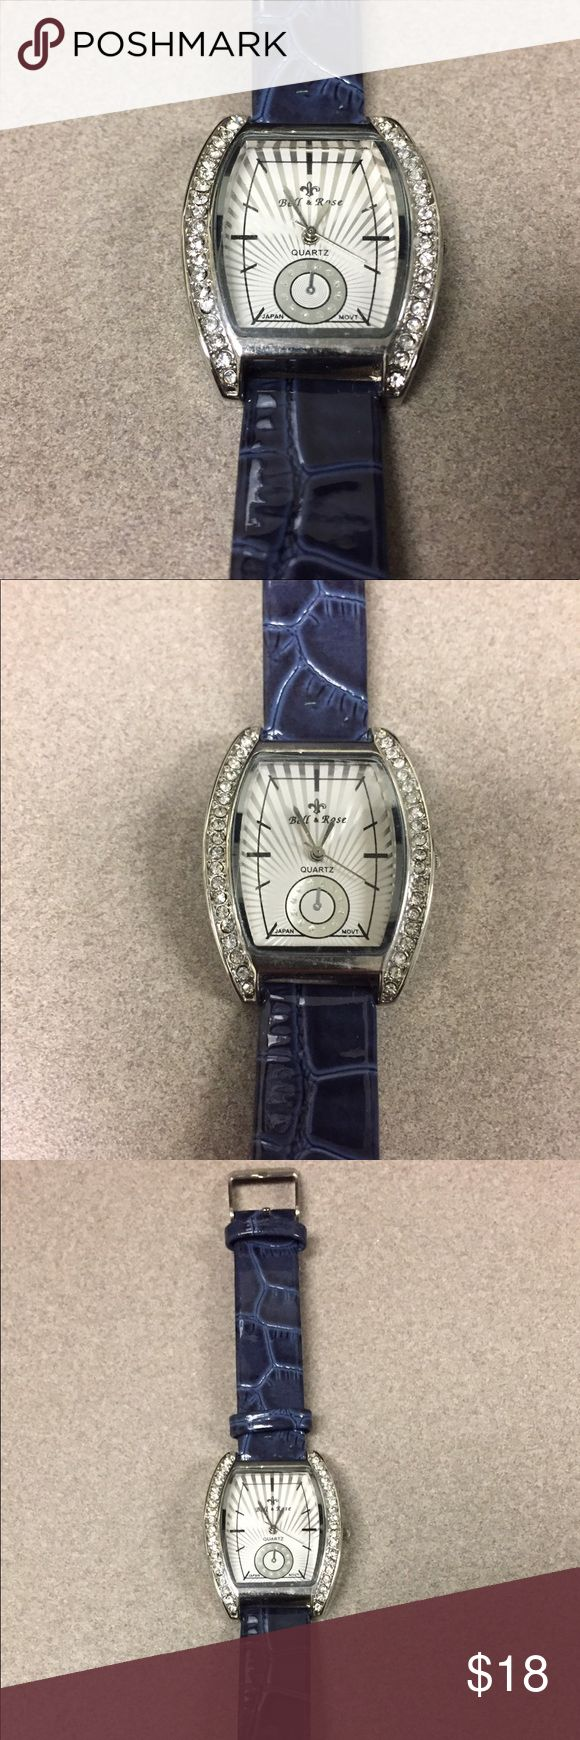 Women's Navy Blue Quartz Watch Silver & white face with tick marks for the hour positions. Face has a fleur de lis above the brand name. Adorned with crystals on the left & right side of the watch. Quartz (Japan Movement). Band is a pretty shade of navy with croc detail. Back of the face is stainless steel. Unique color in great condition! Brand new battery. Bell & Rose Accessories Watches